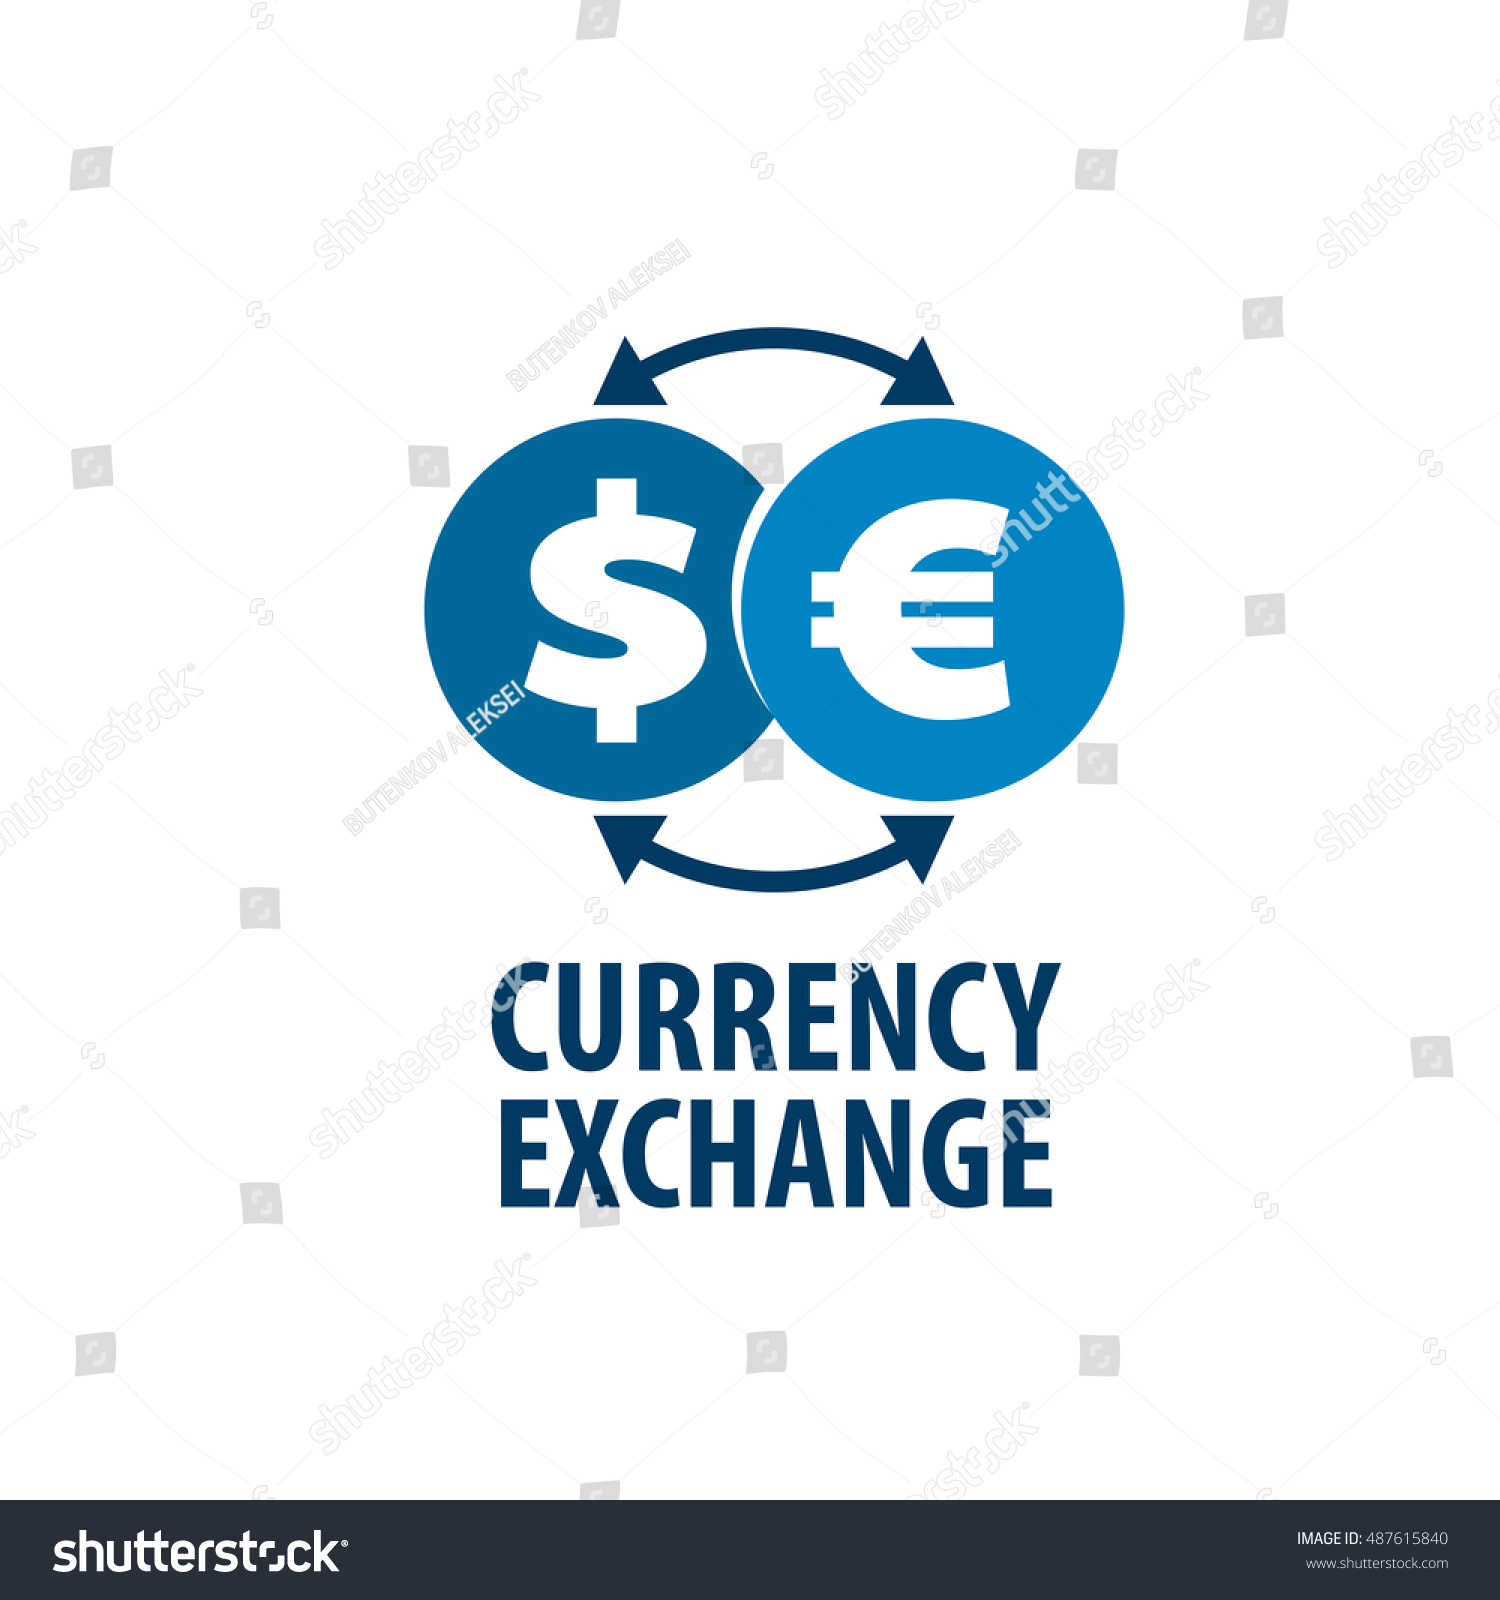 Stock exchange currency